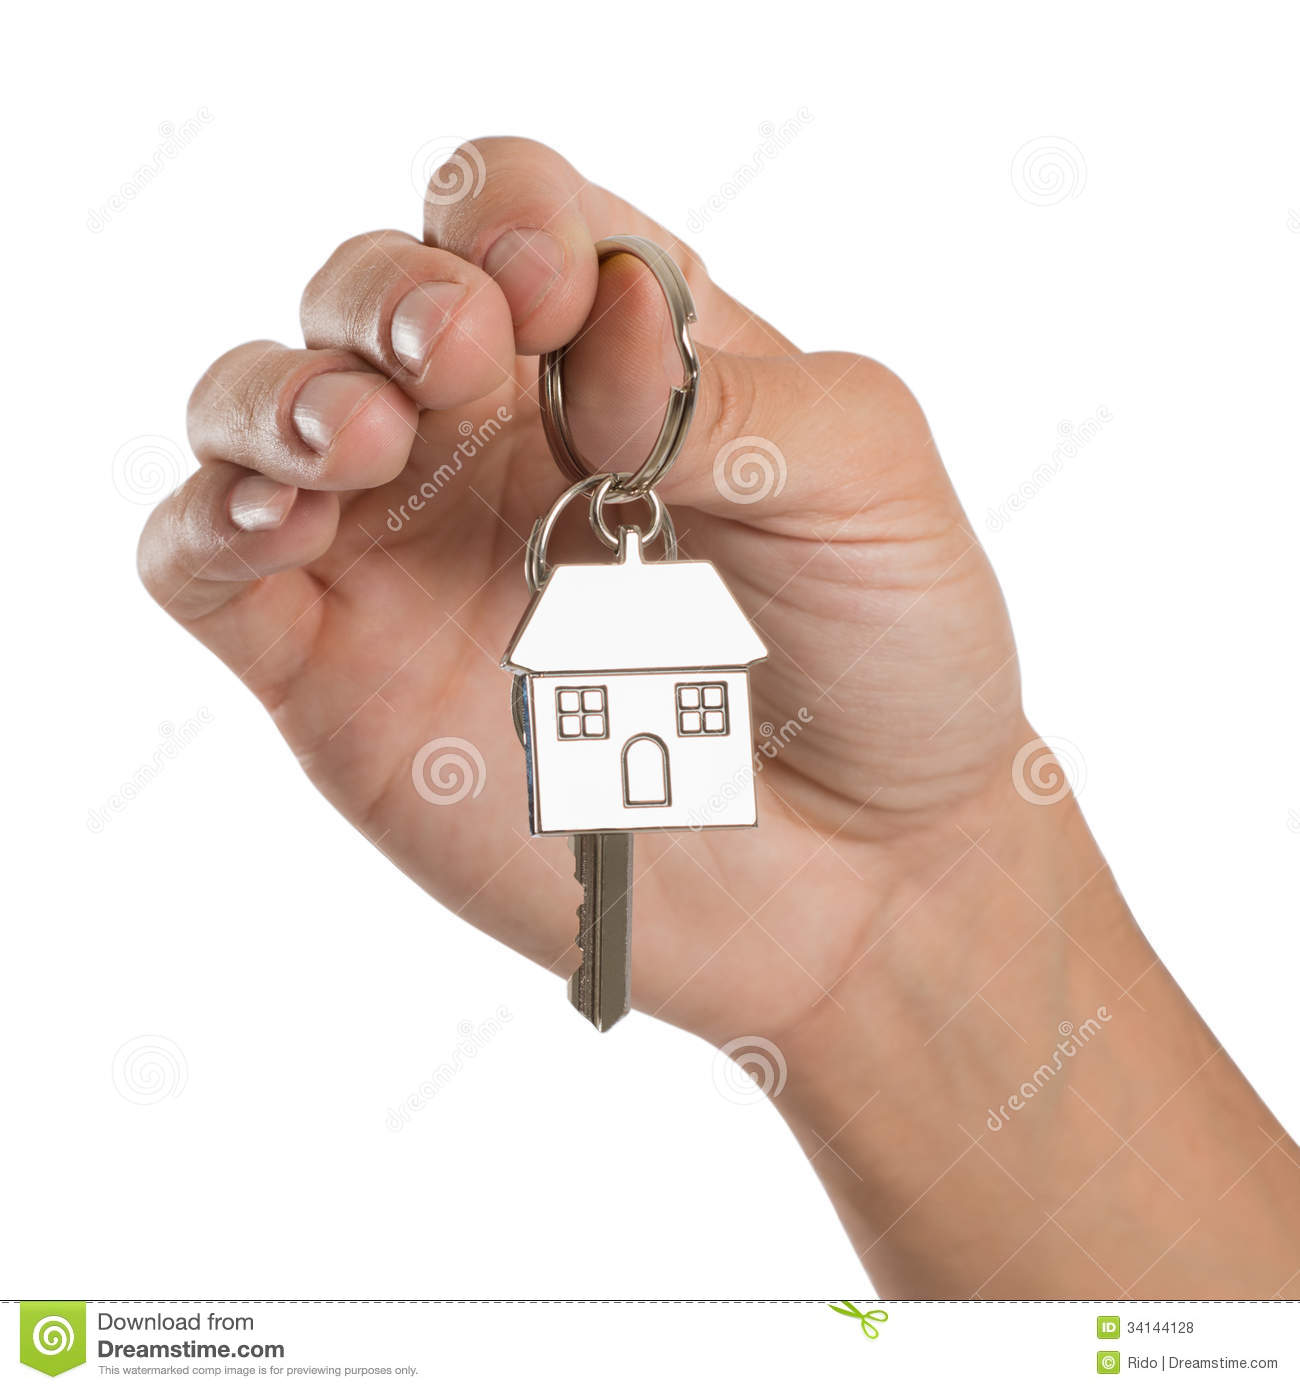 Royalty Free Stock Photos Hand Holding House Key Close Up Isolated White Background Image34144128 as well Greene And Greene Gamble House Pasadena 1908 Craftsman Family Room Los Angeles furthermore Islamic Architecture Of Andalusia 2 as well Impeccable Plantation Style Estate as well 2816778284. on arts and crafts architecture house plans